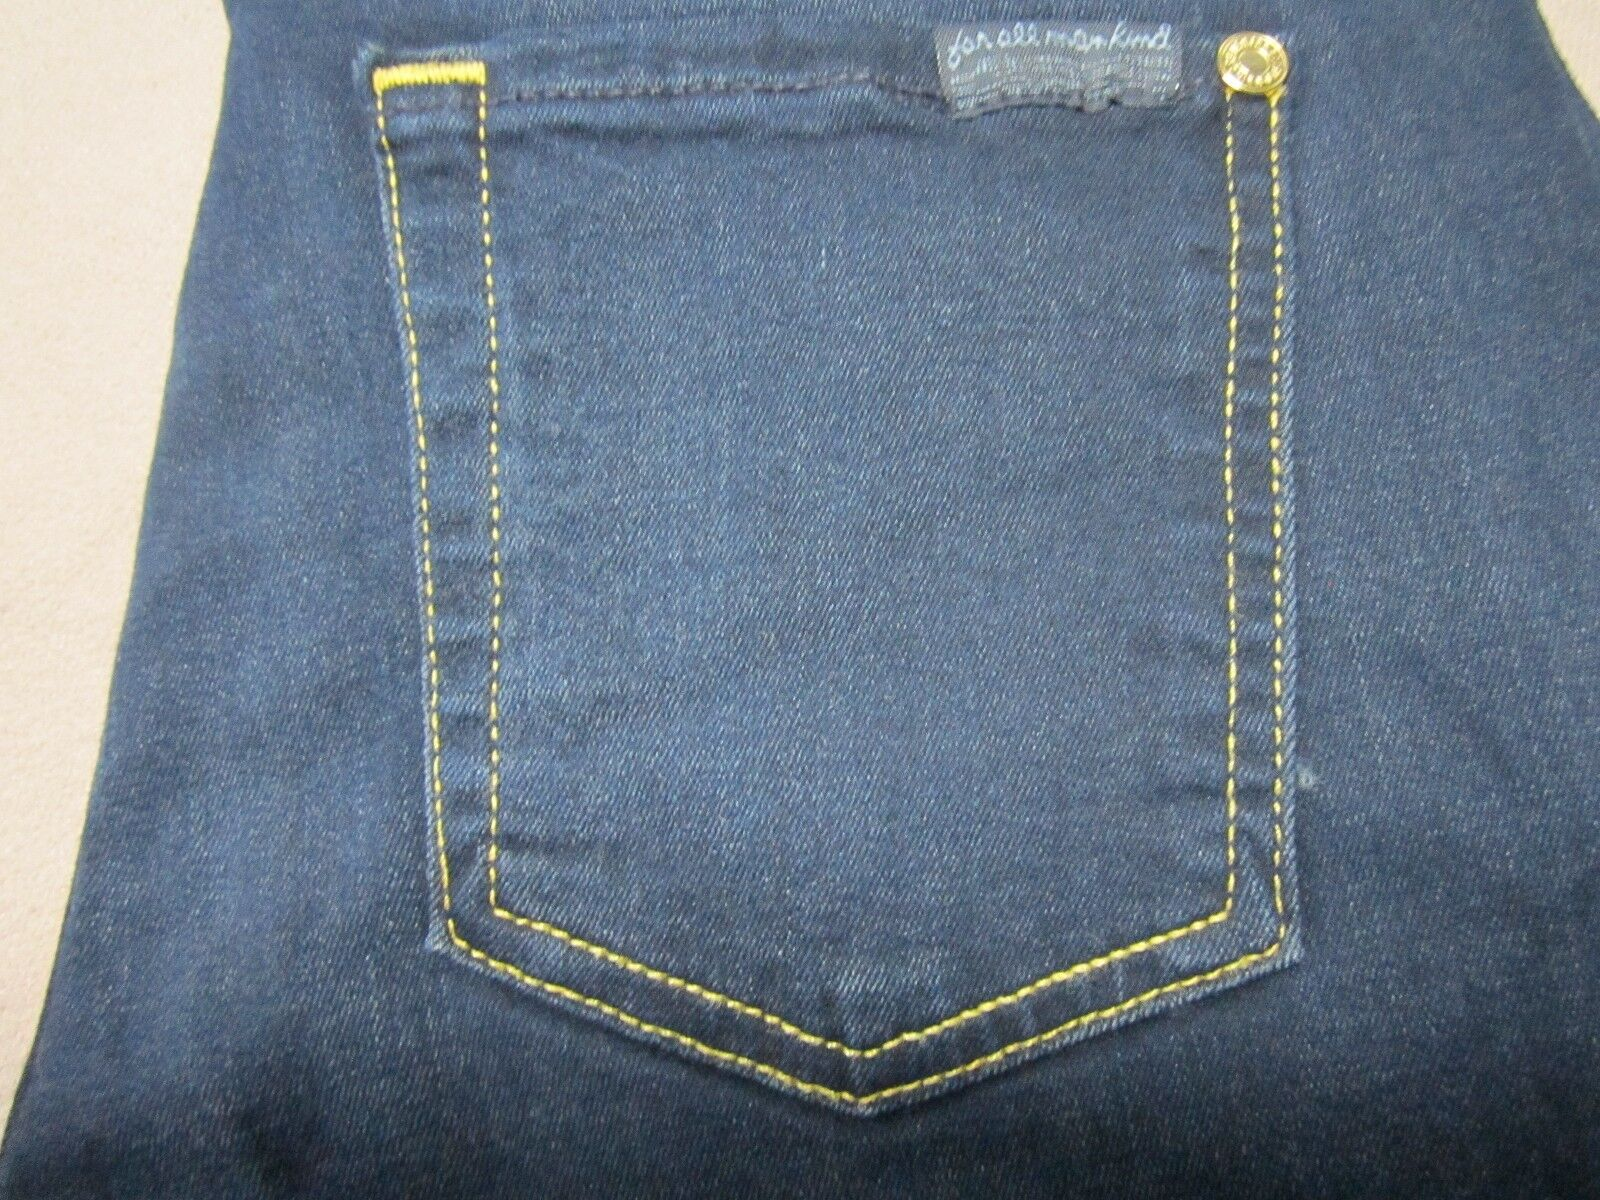 SEVEN 7 FOR ALL MANKIND WOMENS THE MID RISE ANKLE SKINNY DARK blueE JEANS SIZE 26